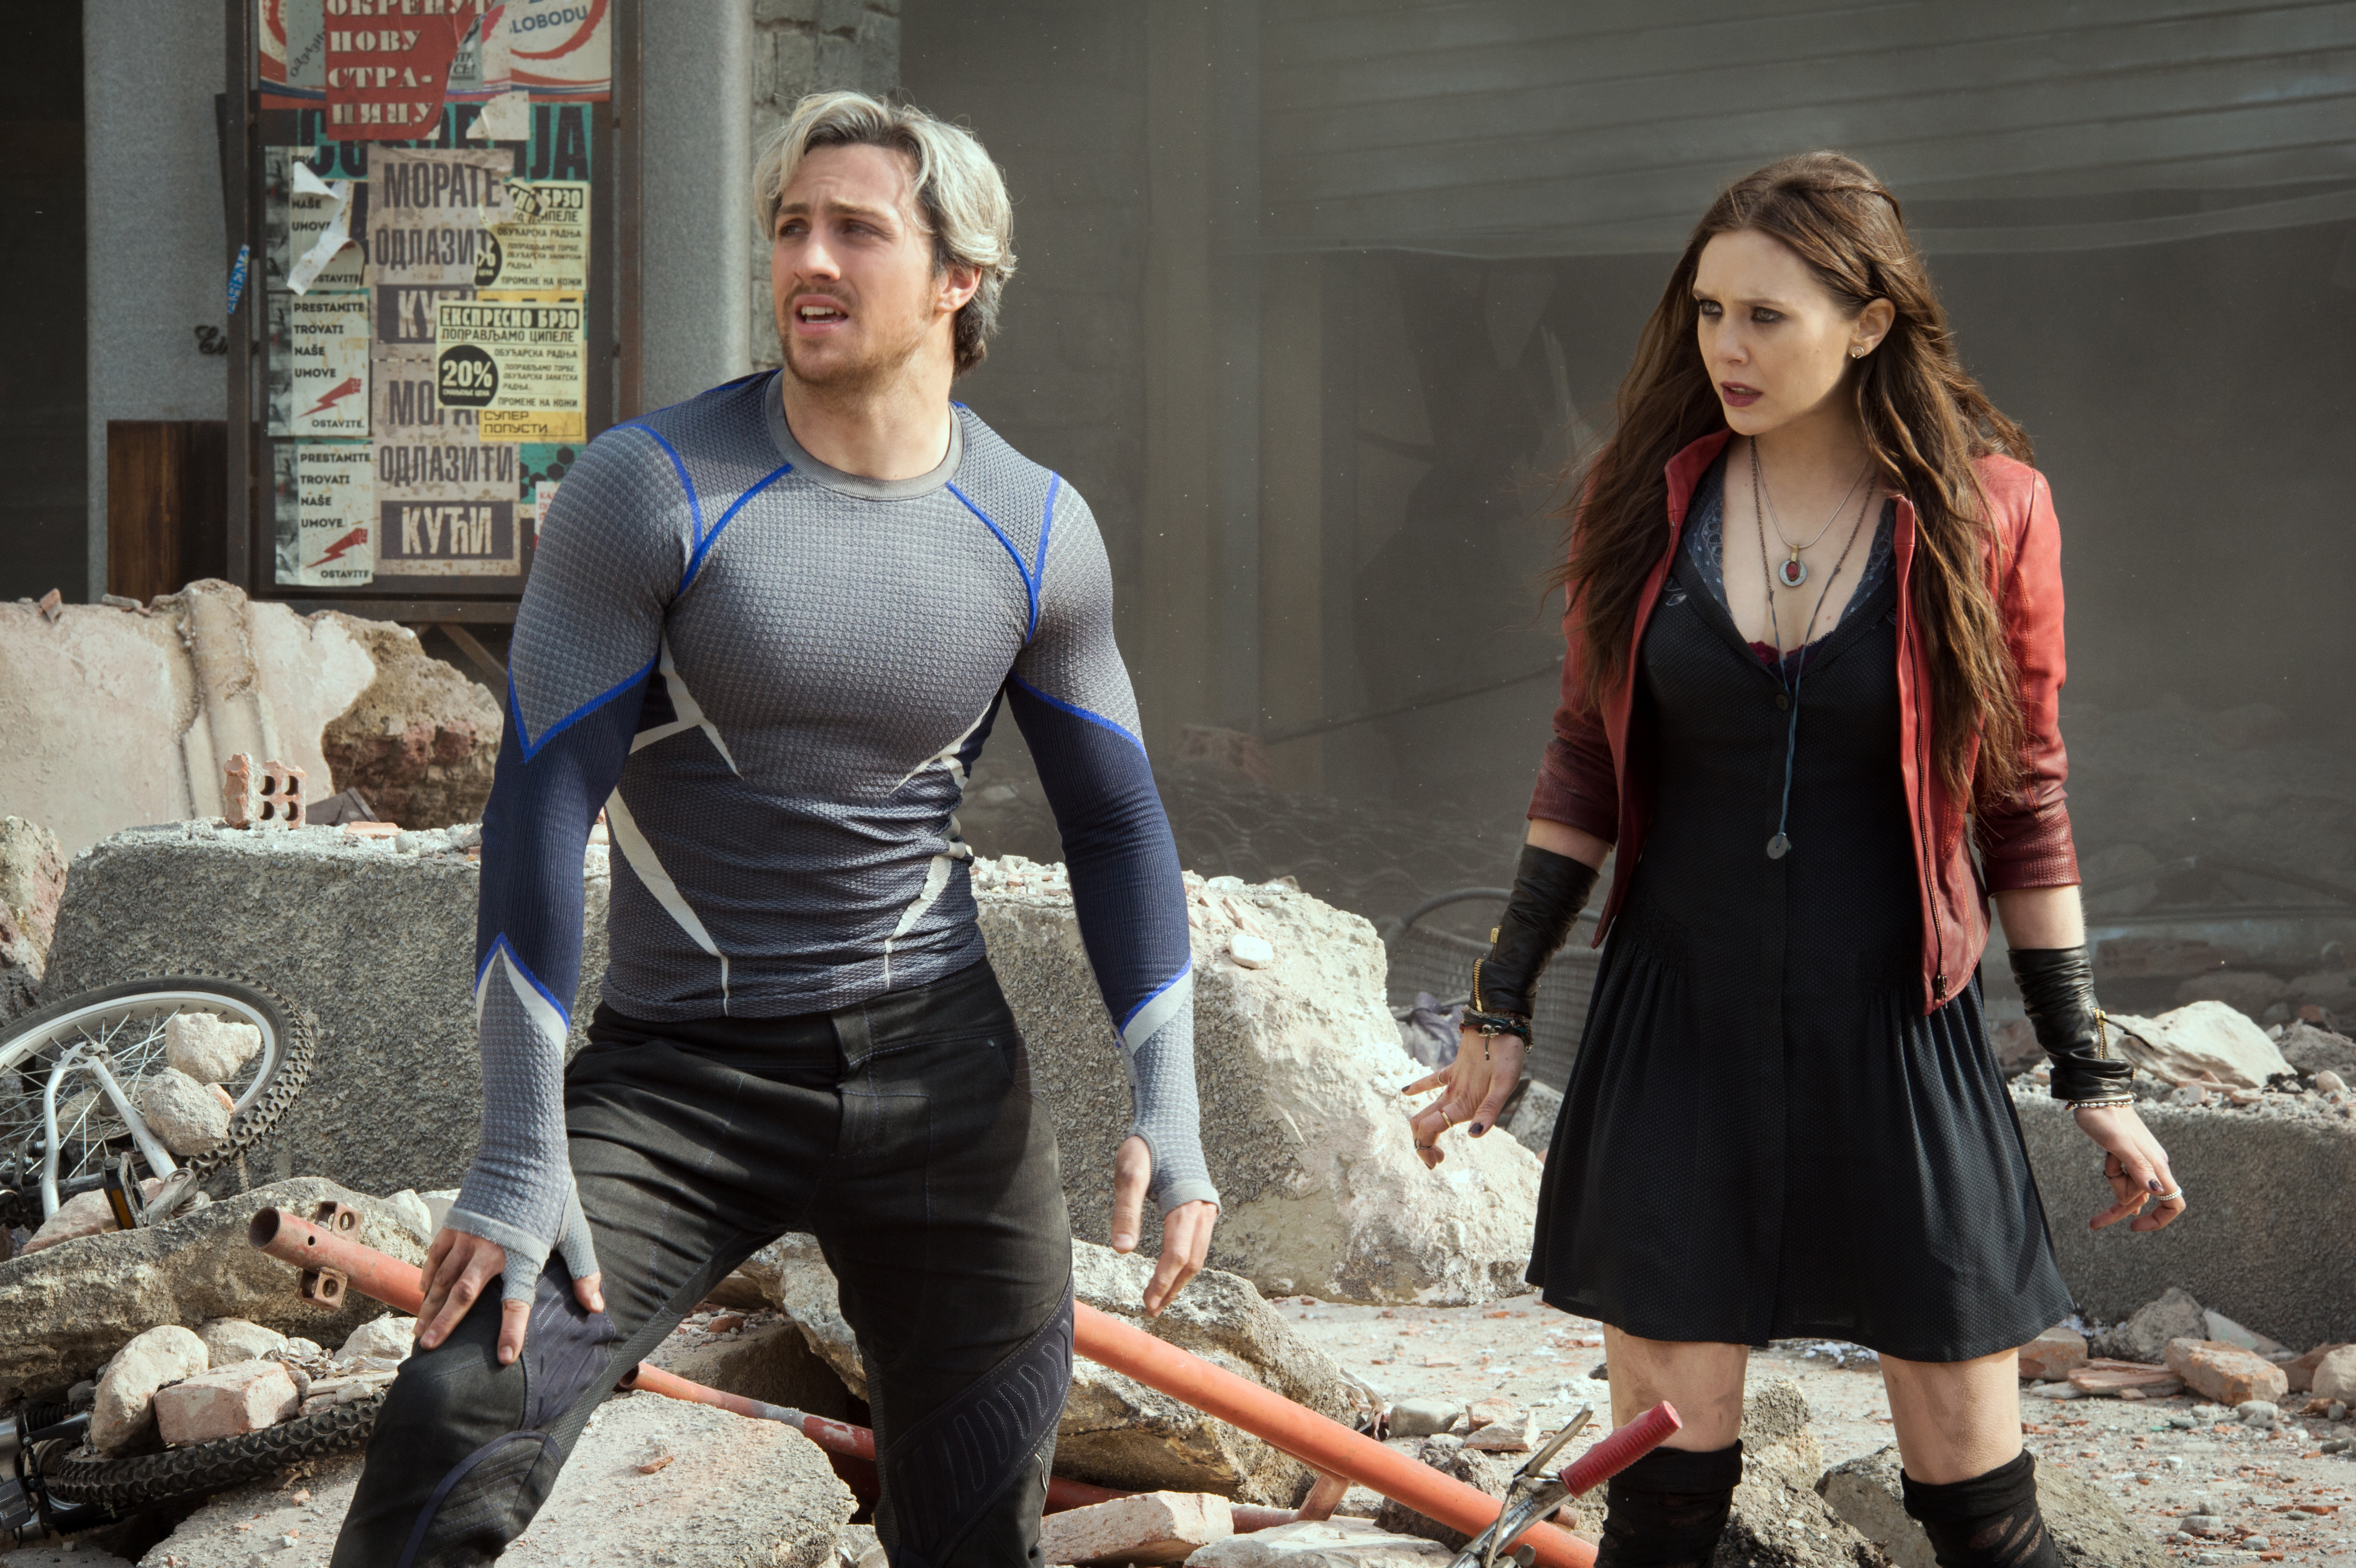 Marvel's Avengers: Age Of Ultron..Quicksilver/Pietro Maximoff (Aaron Taylor-Johnson) and Scarlet Witch/Wanda Maximoff (Elizabeth Olsen)..Ph: Jay Maidment..?Marvel 2015